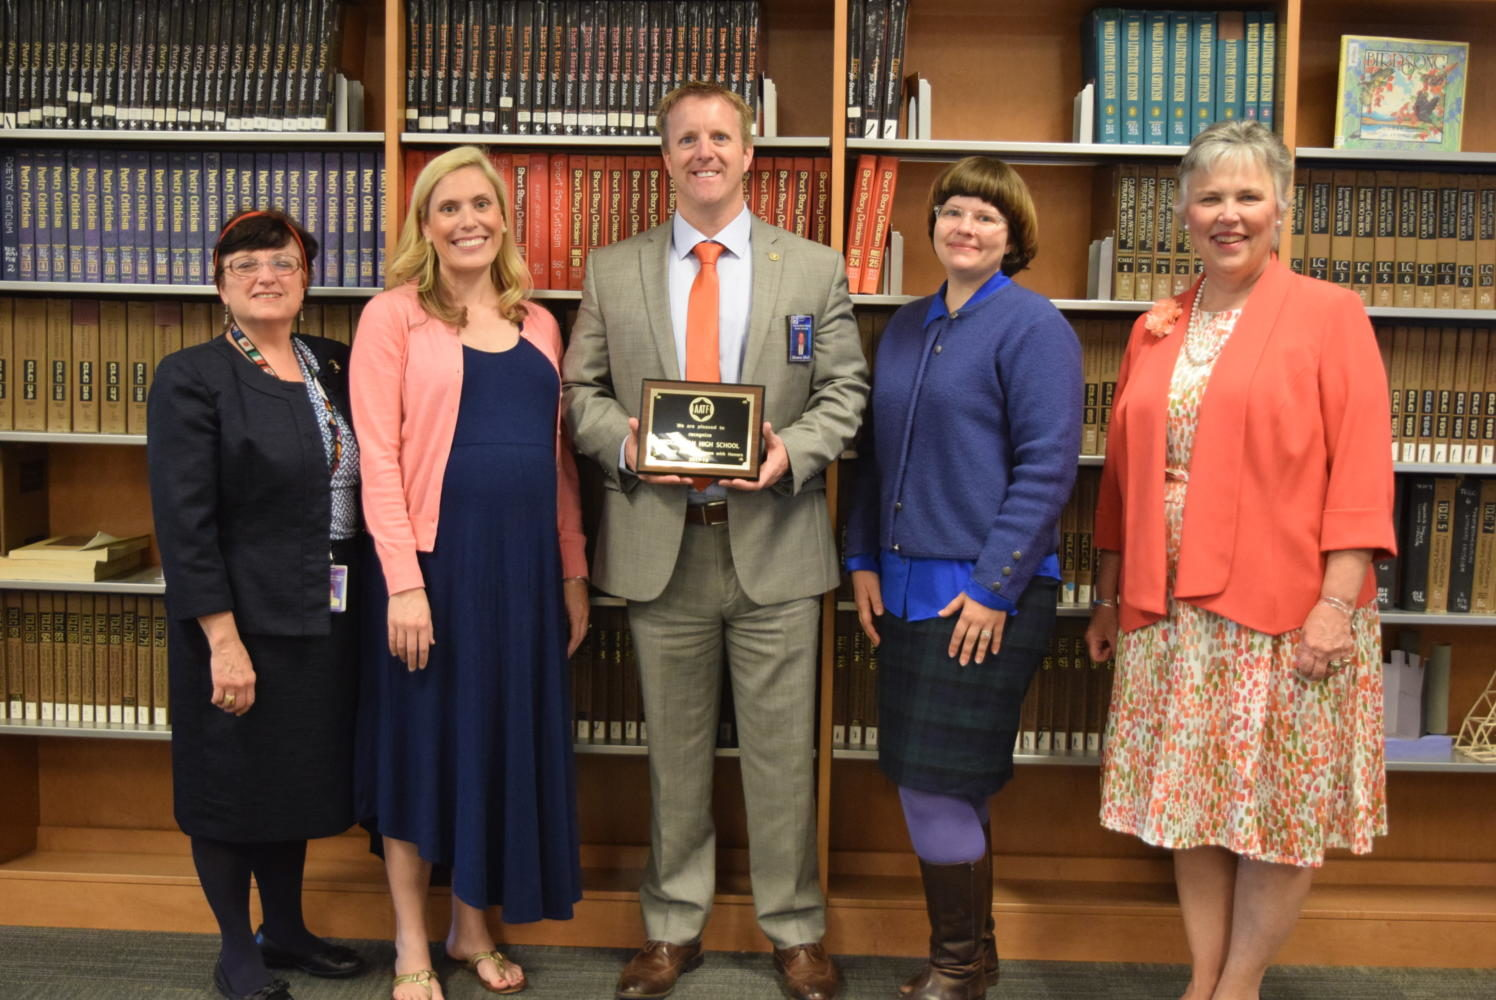 Dr. Linda Szwabowski , Mme. Lindsay Garrison, Midlo Principal Shawn Abel, Mme. Catherine Mazzola, and Mrs. Donna Dalton celebrate the Midlo French Department's distinction as an AATF Exemplary Program with Honors.